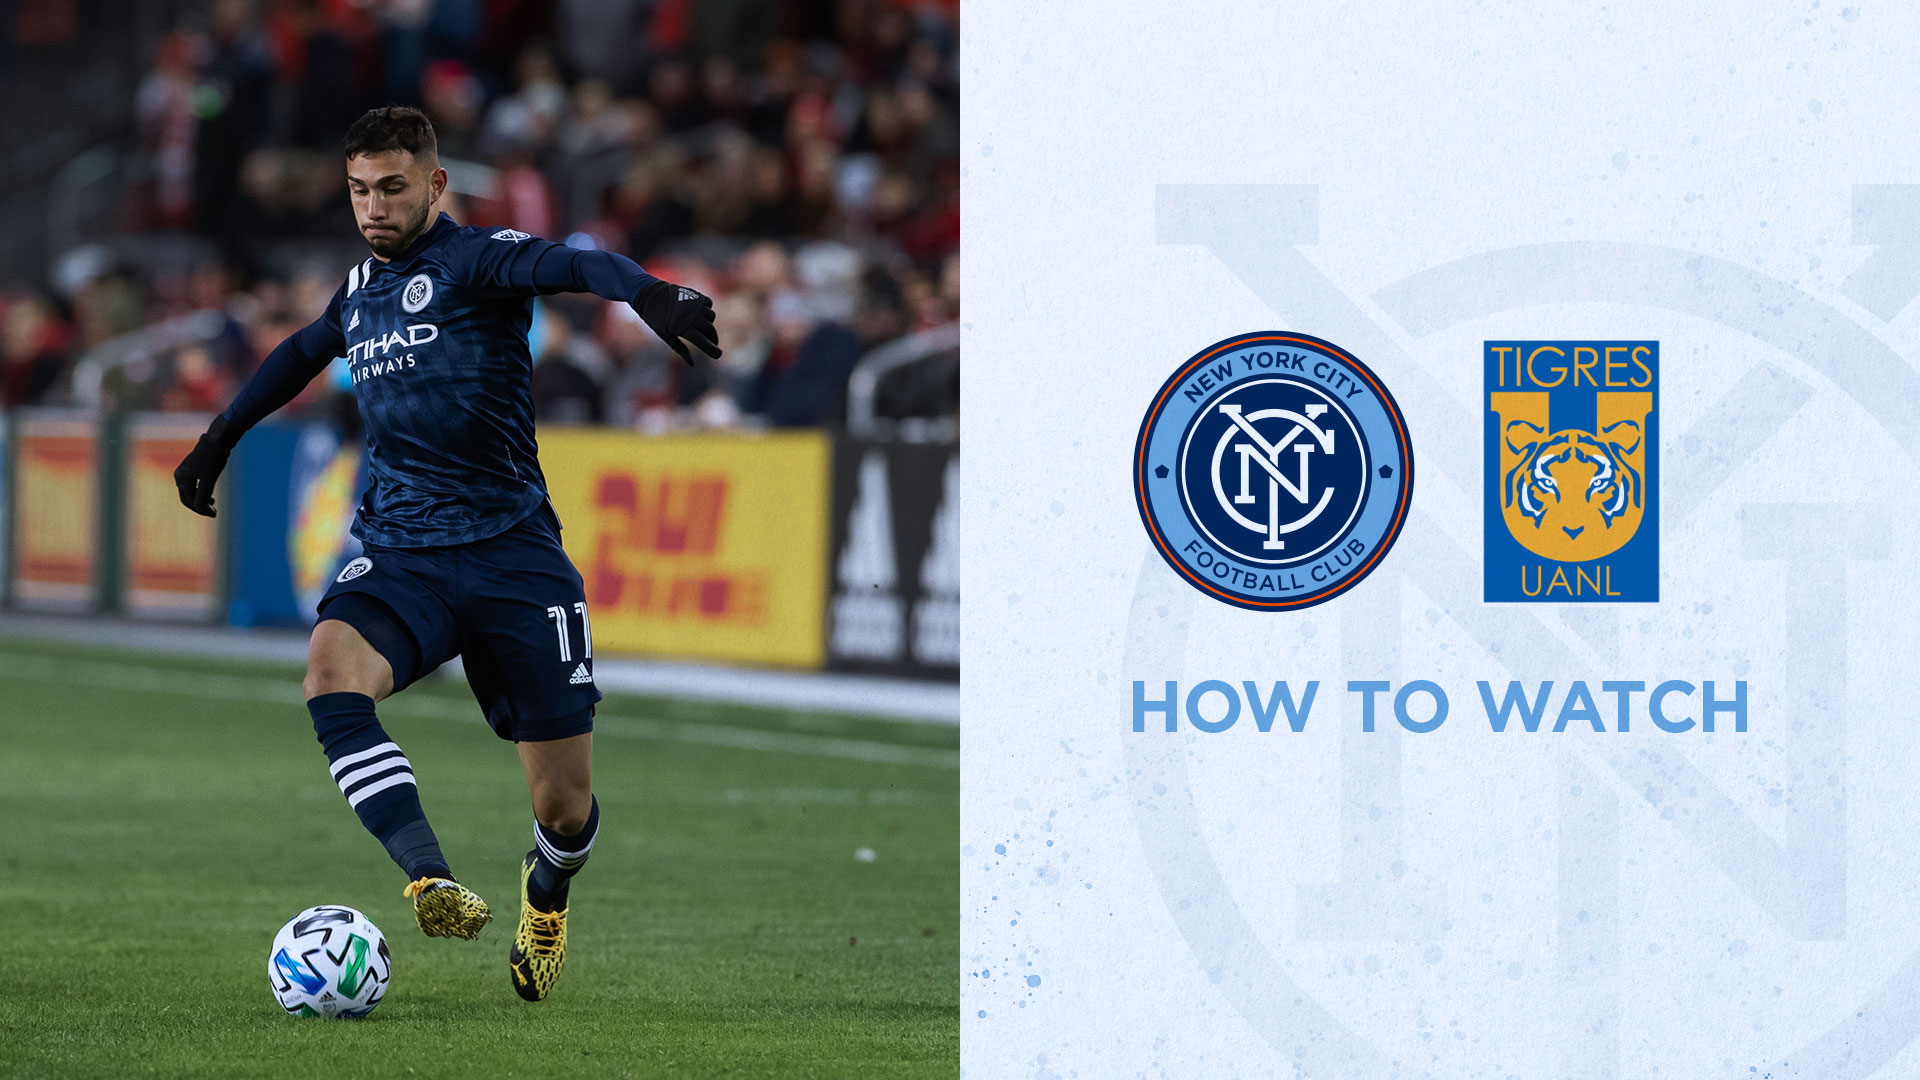 What TV Channel is NYCFC vs. Tigres UANL? | New York City FC